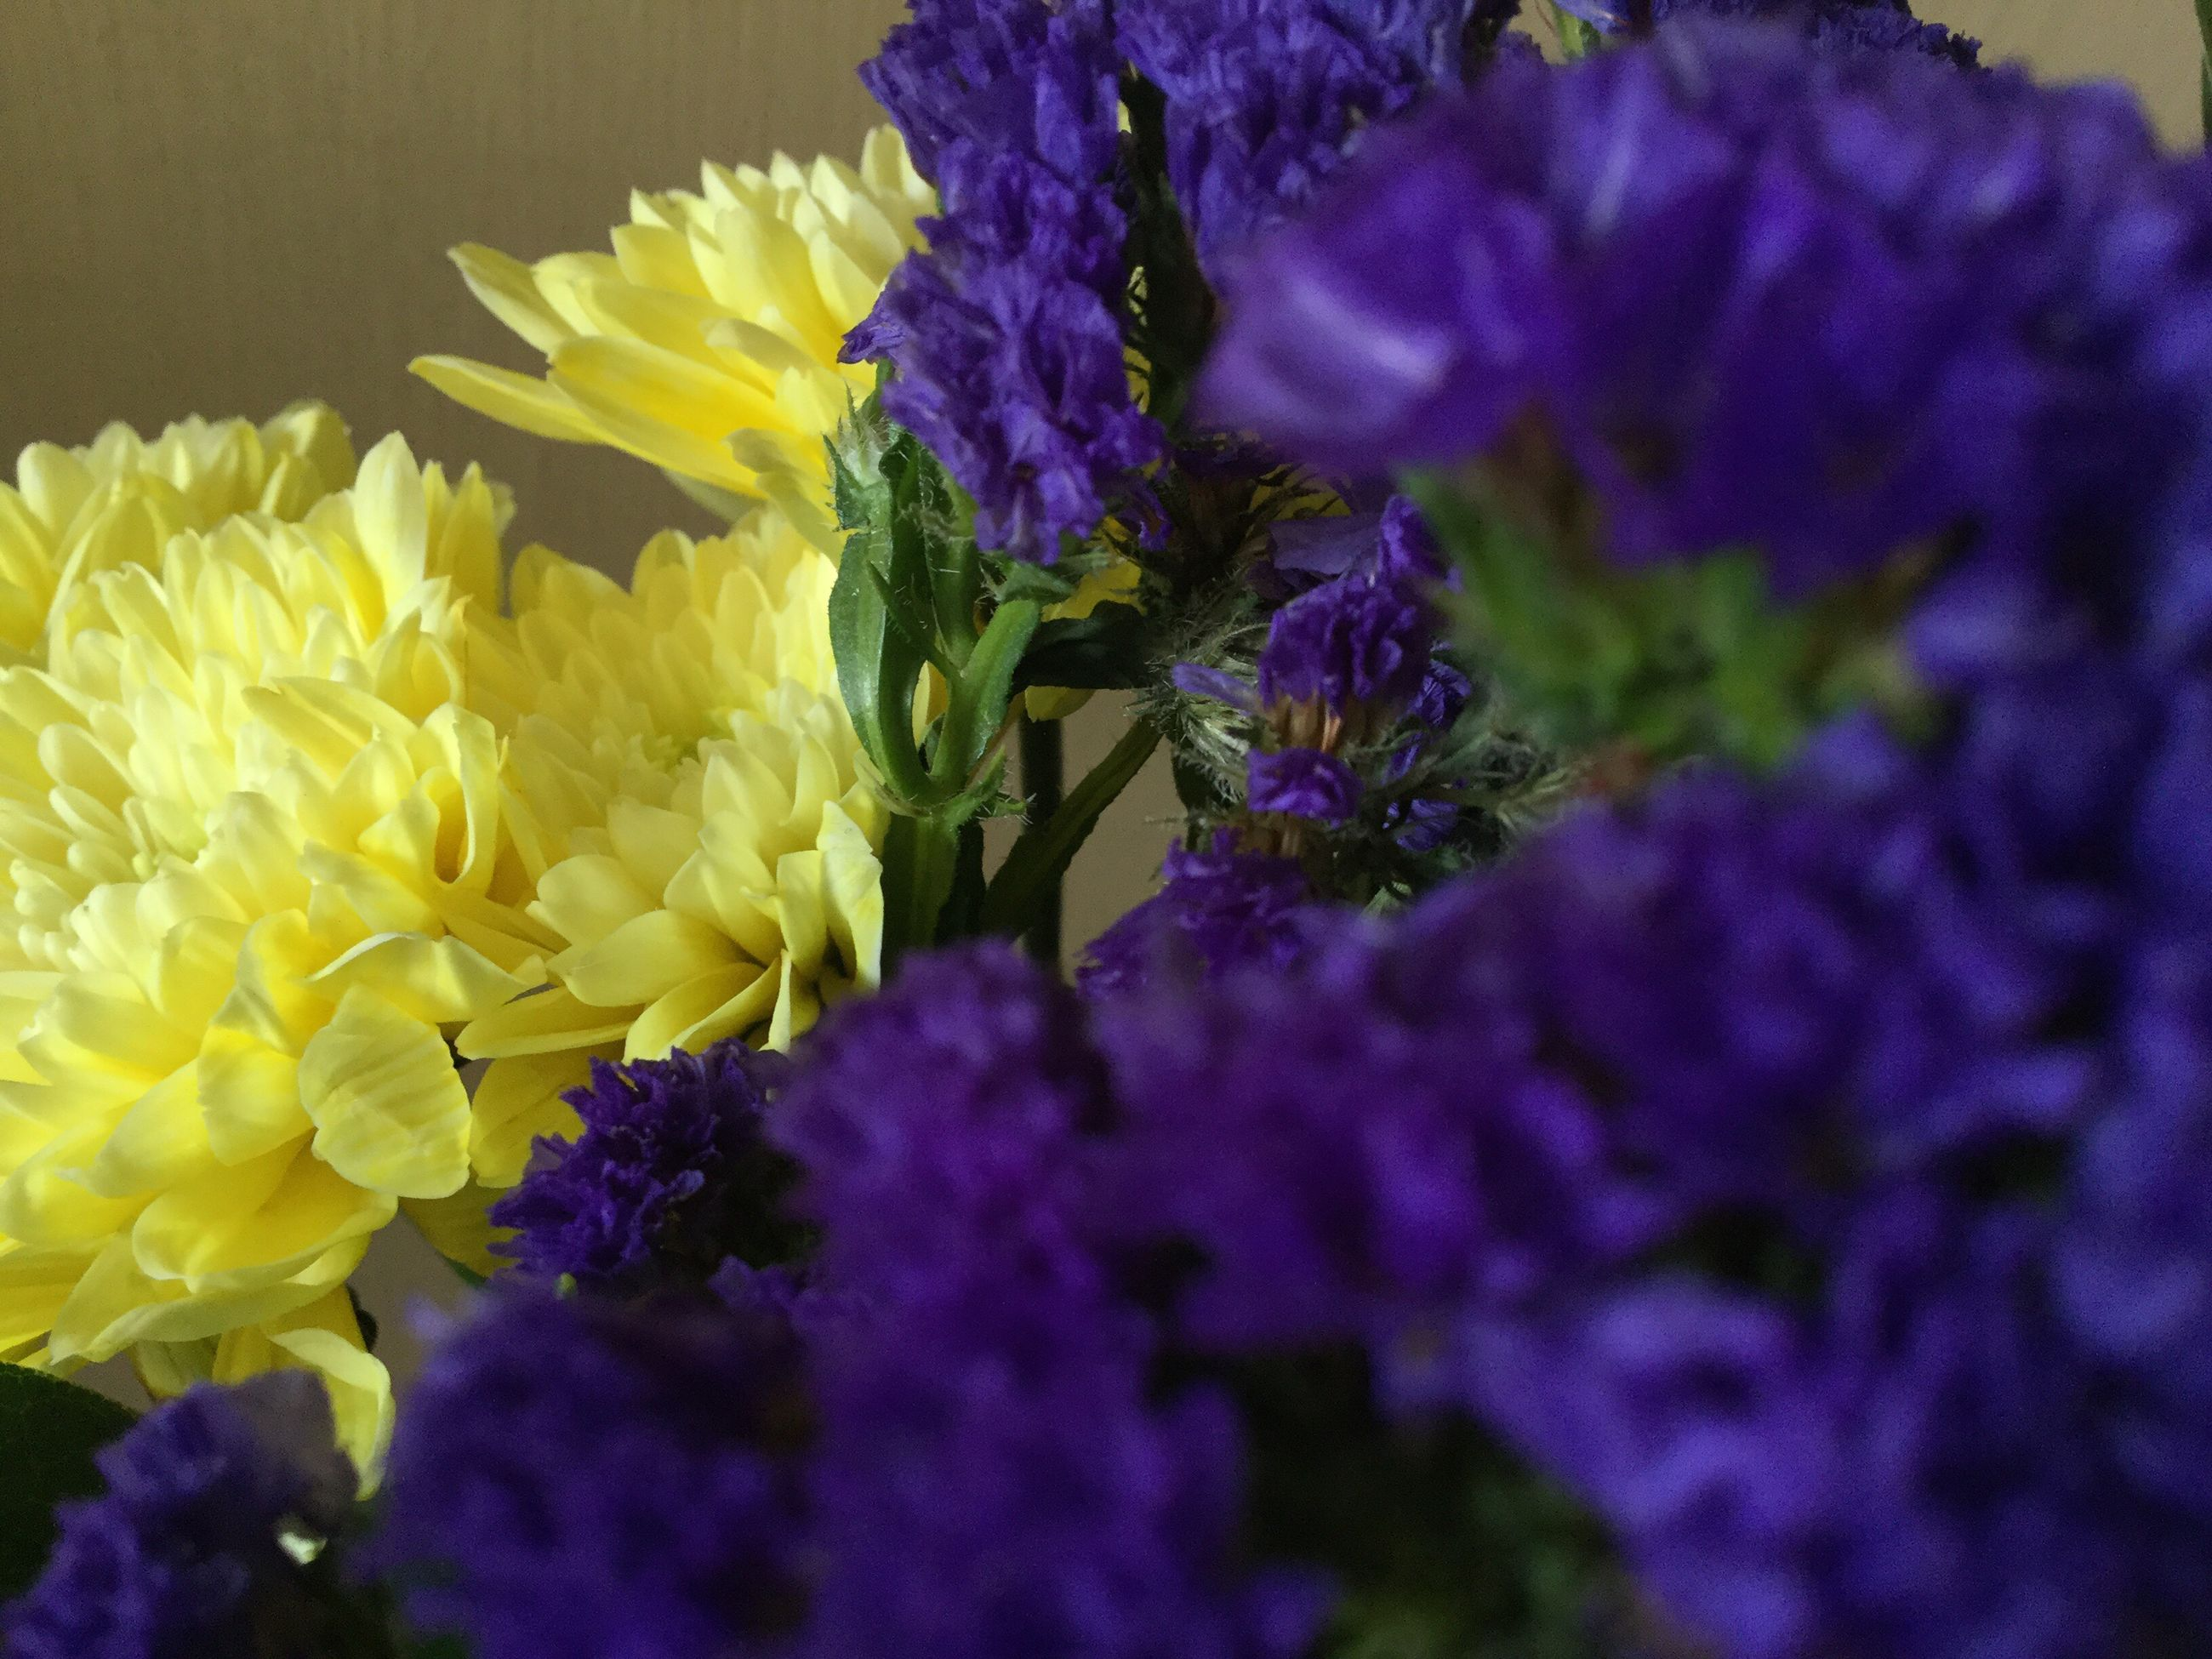 flower, purple, fragility, beauty in nature, freshness, nature, growth, petal, flower head, plant, no people, close-up, day, outdoors